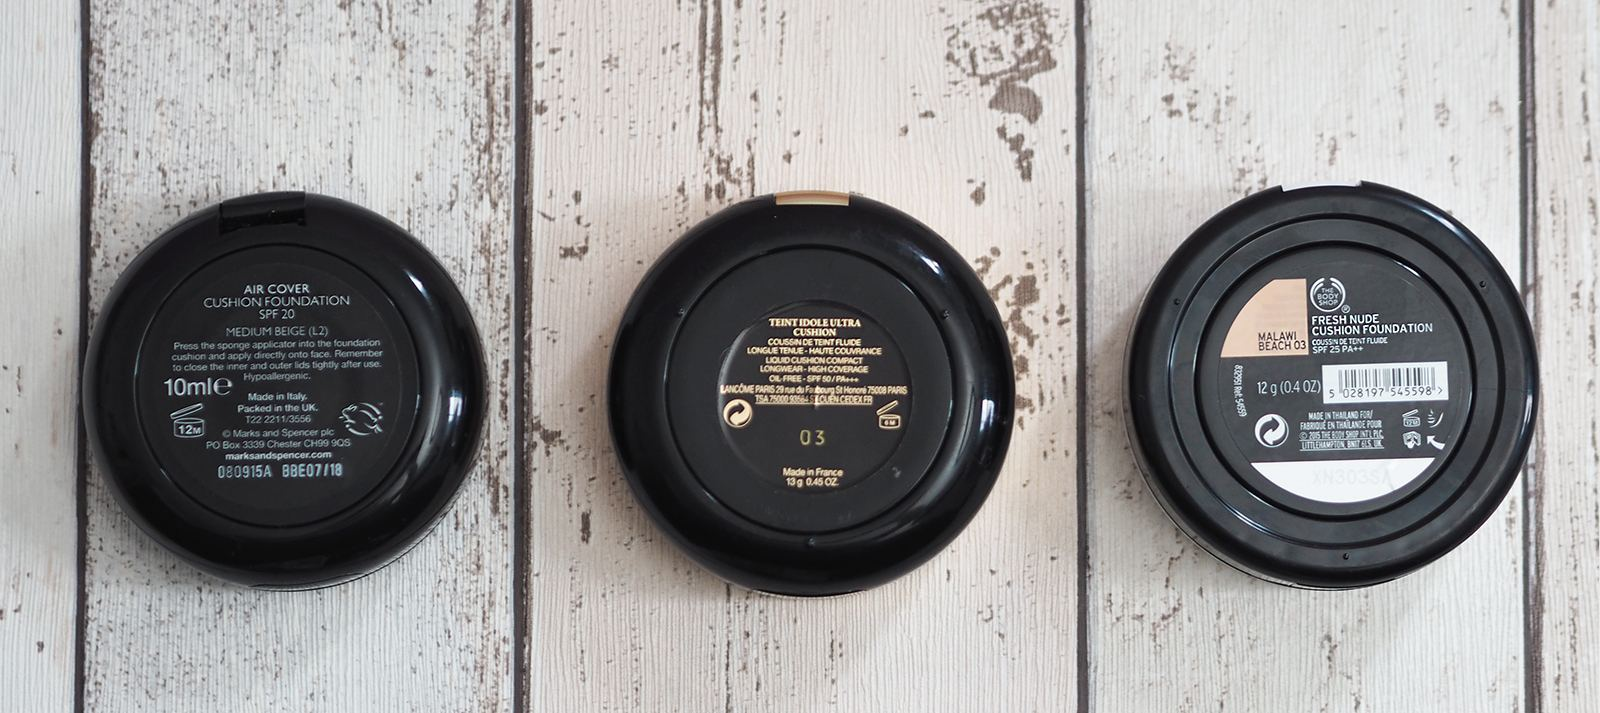 cushion foundations review lancome body shop marks and spencer